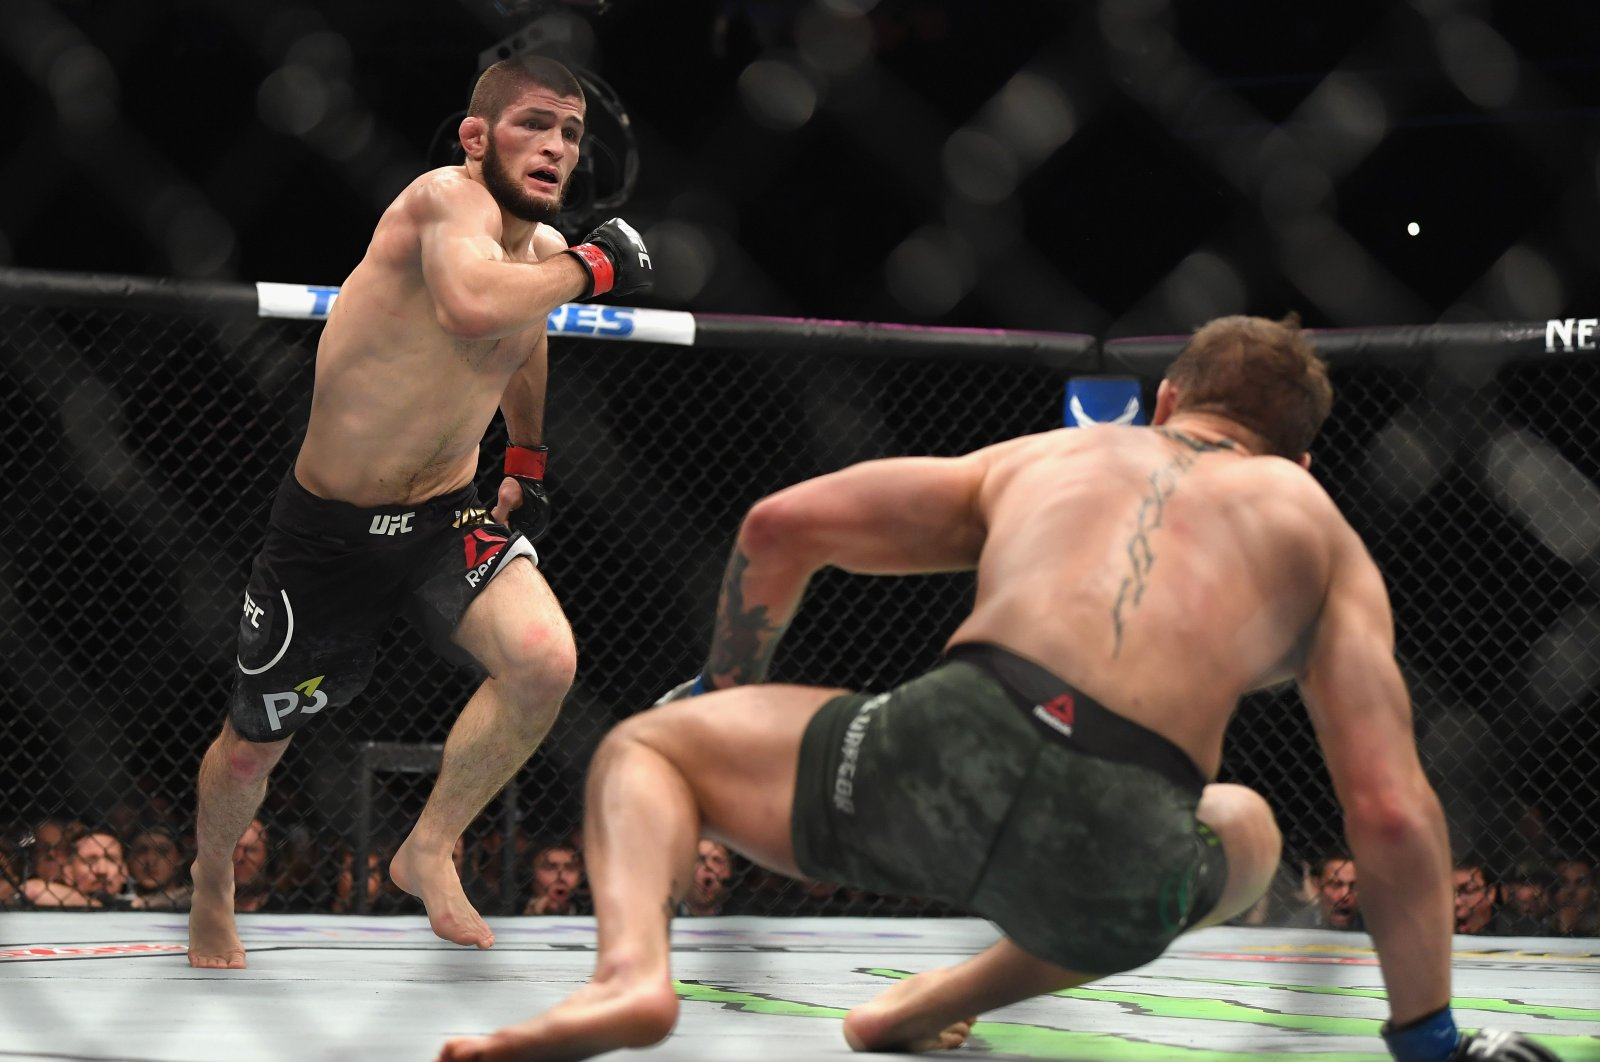 Khabib Nurmagomedov (L) fights Conor McGregor during a lightweight title mixed martial arts bout at UFC 229 in Las Vegas, Oct. 6, 2018. (AFP Photo)